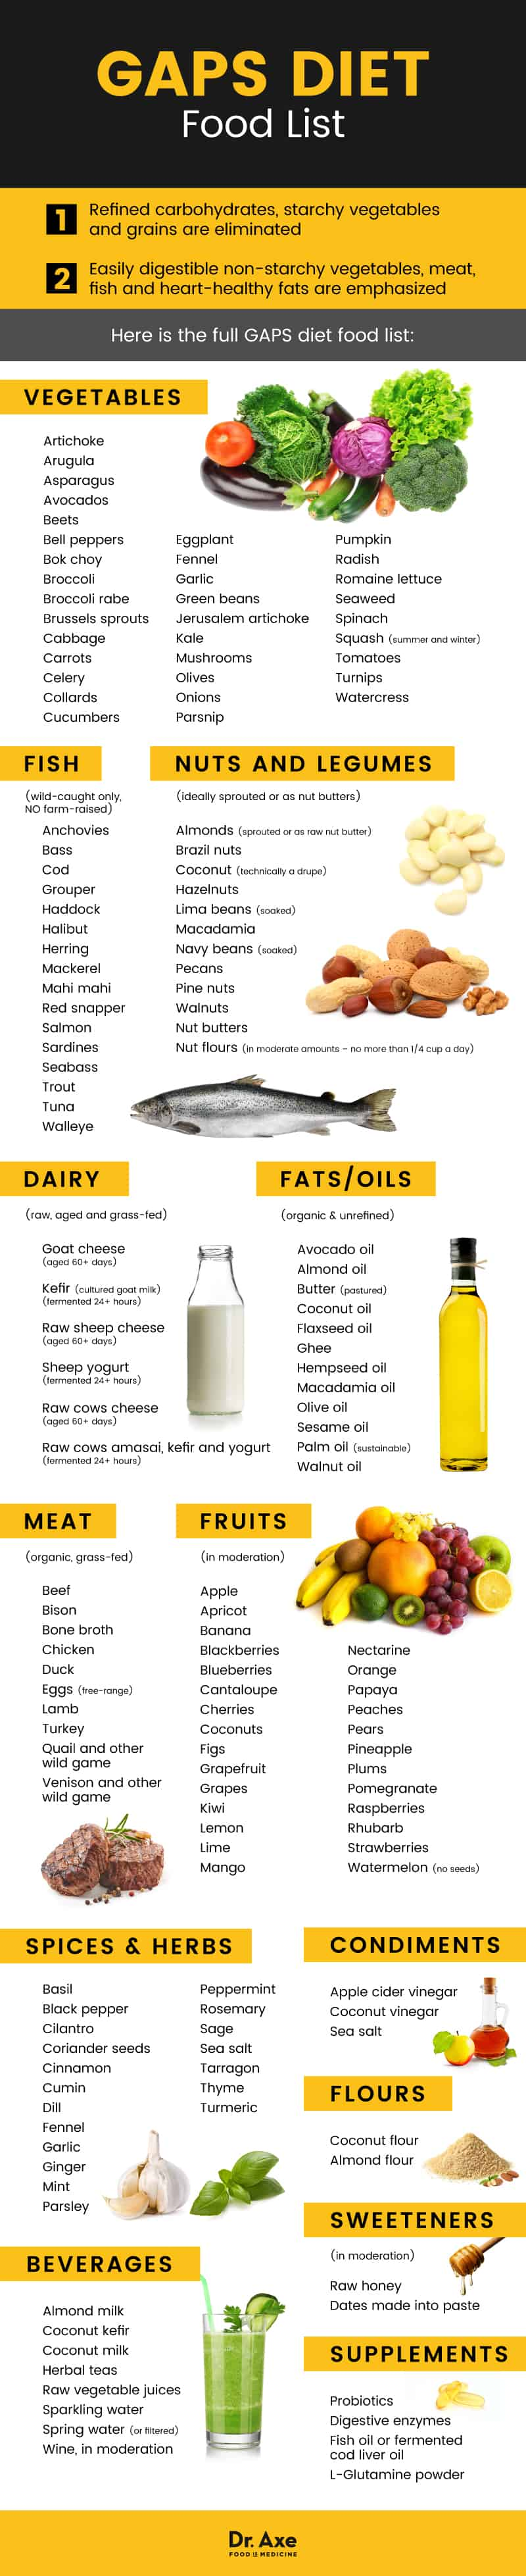 GAPS diet food list - Dr. Axe